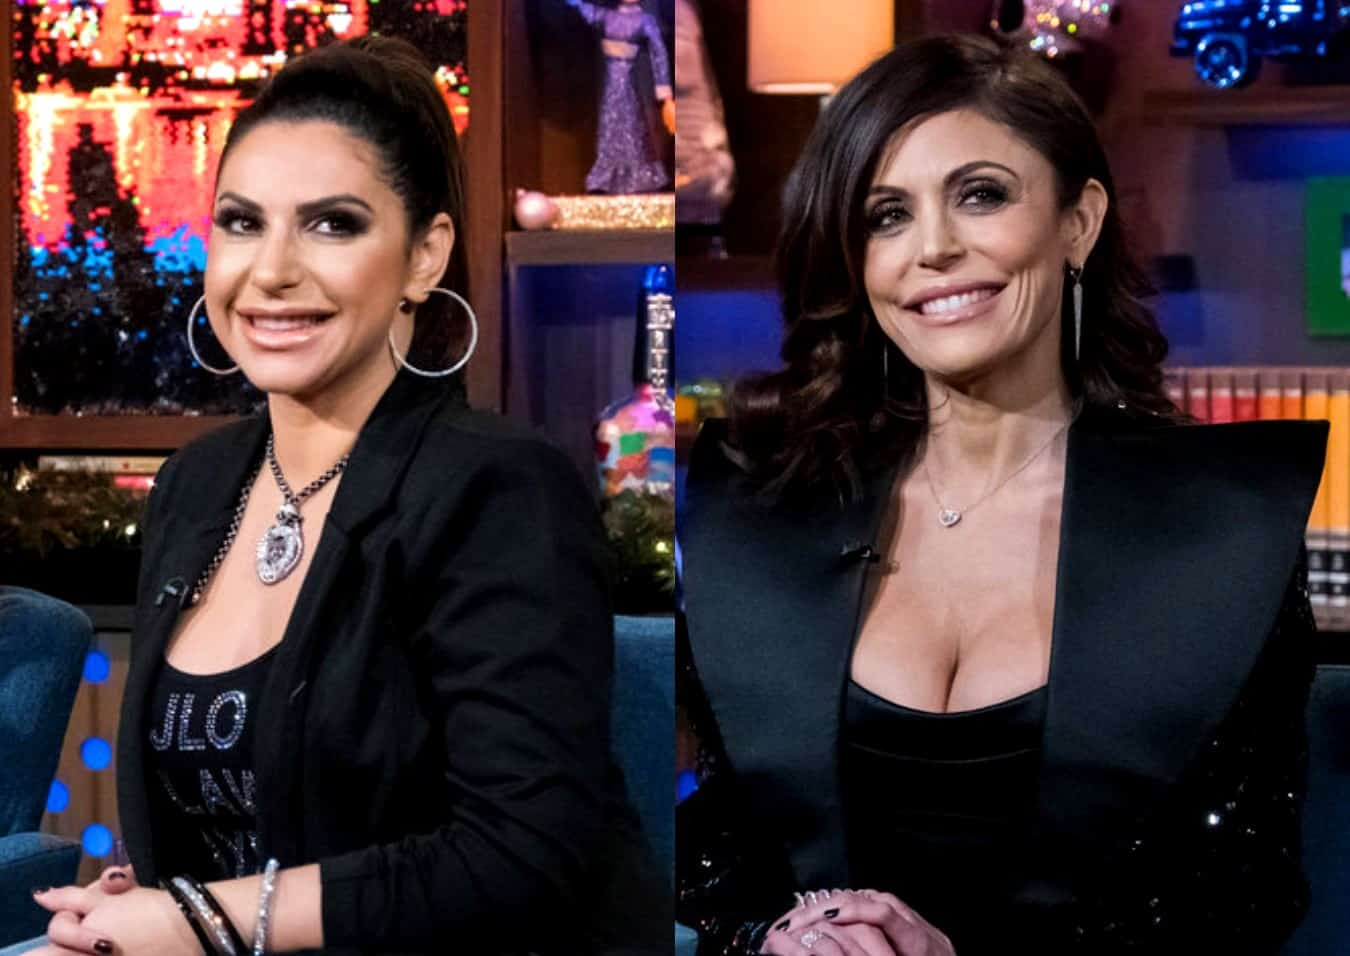 RHONJ's Jennifer Aydin Blasts Bethenny Frankel for Claiming She's Not Funny by Seemingly Throwing Shade at Her Age and Suggests Joe Gorga is Lying About His Sex Life